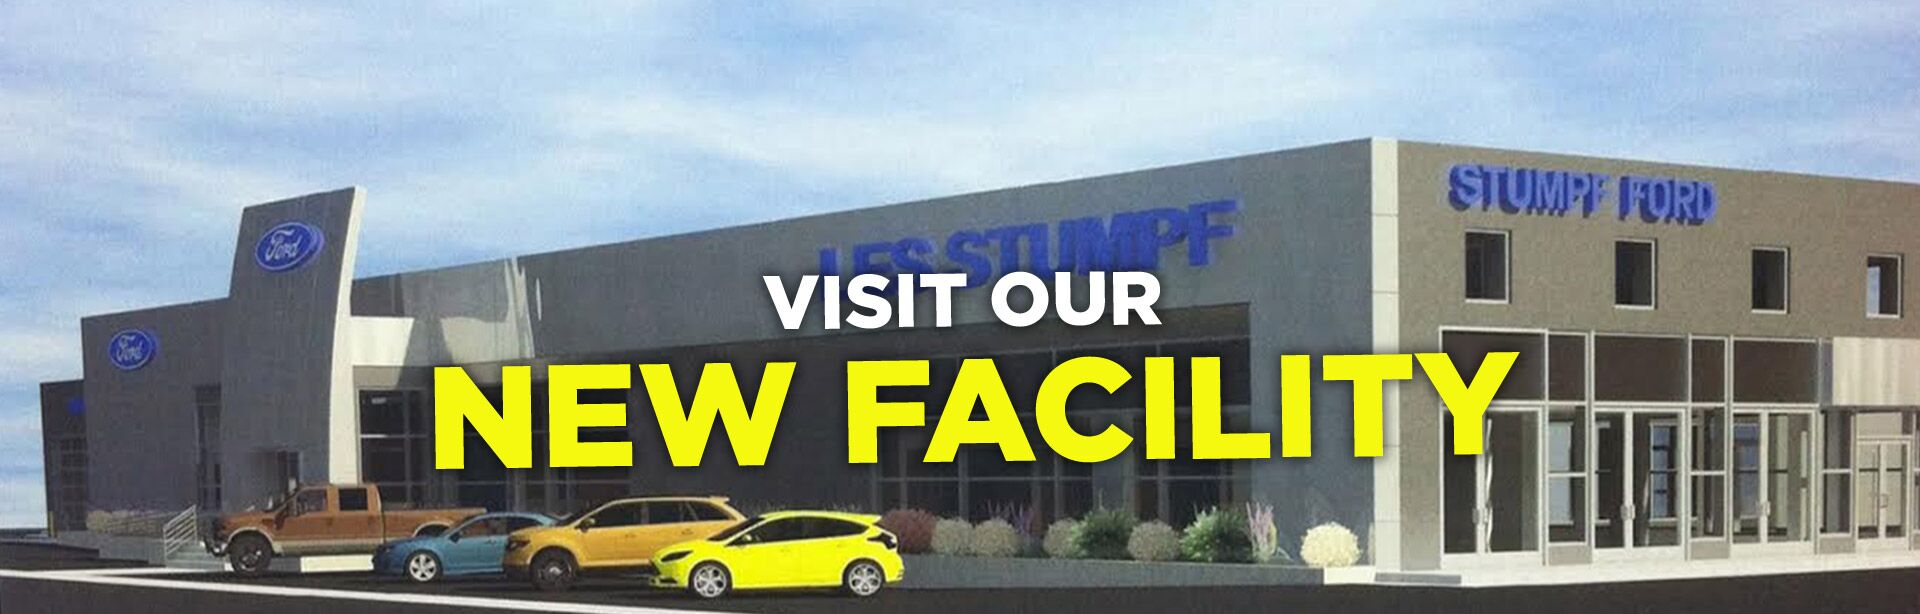 Visit our New Facility